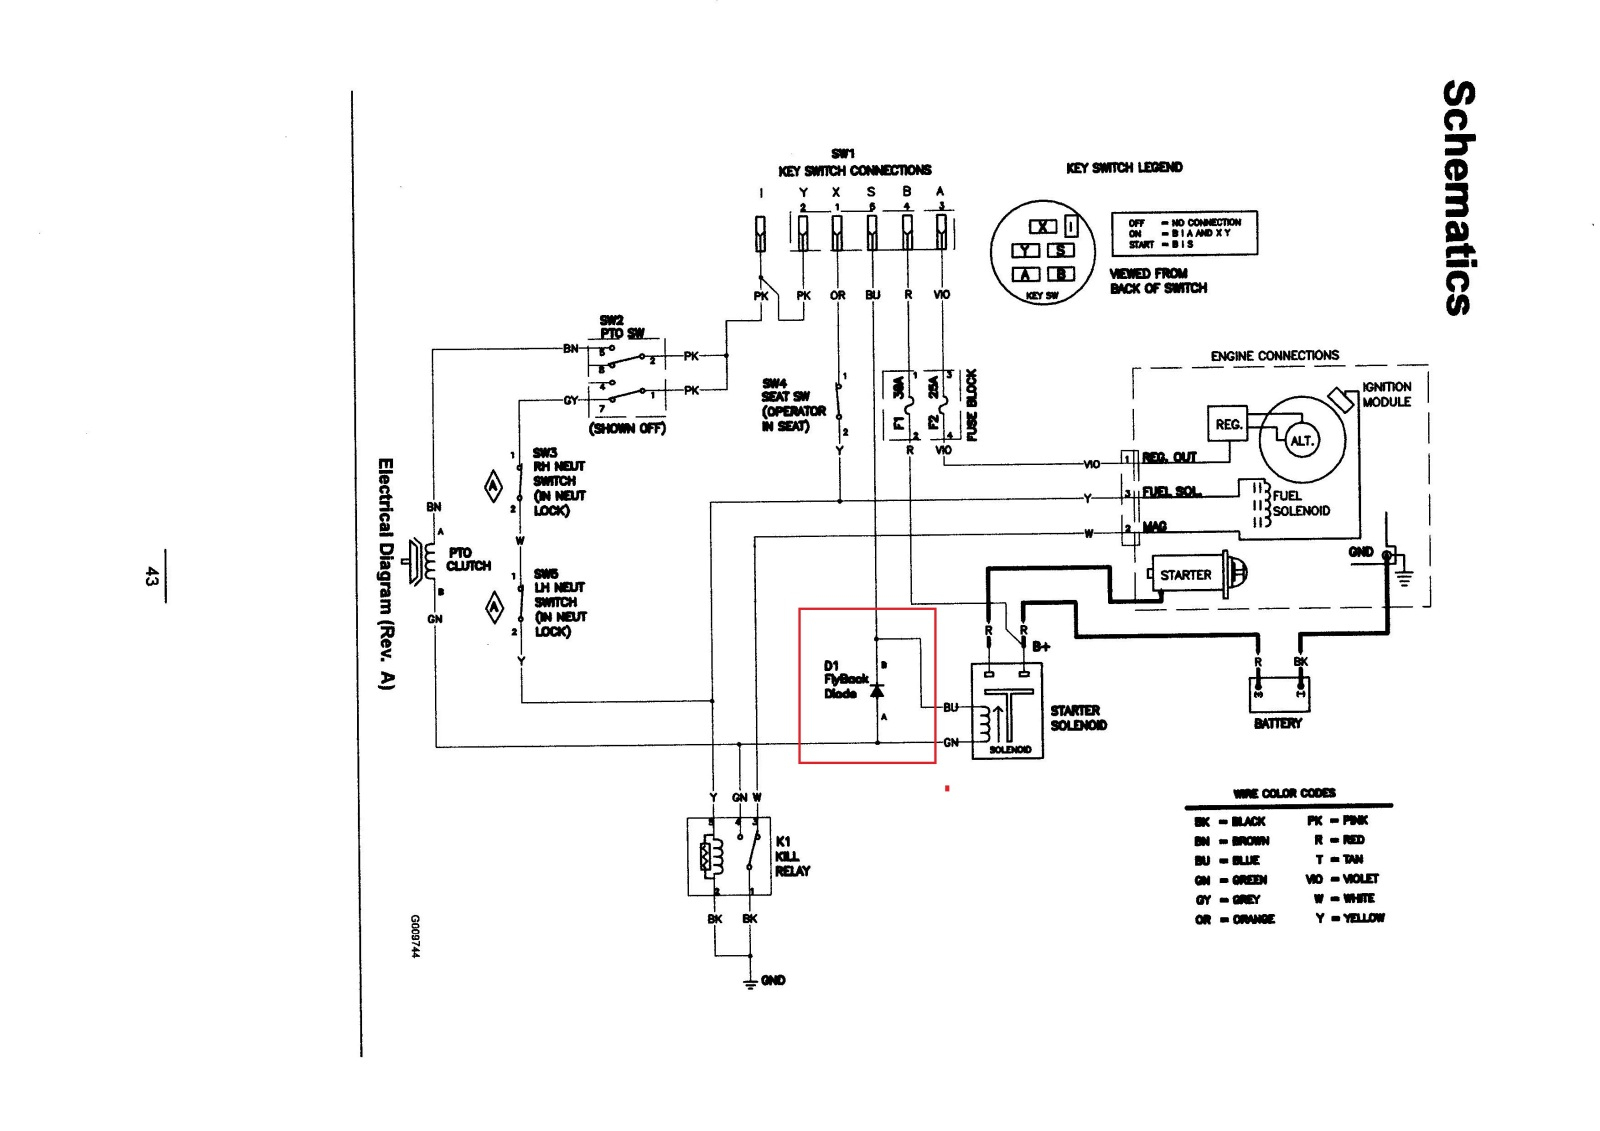 5610 Ford Tractor Wiring Diagram - Wiring Diagram Data Oreo - Ford Tractor Ignition Switch Wiring Diagram